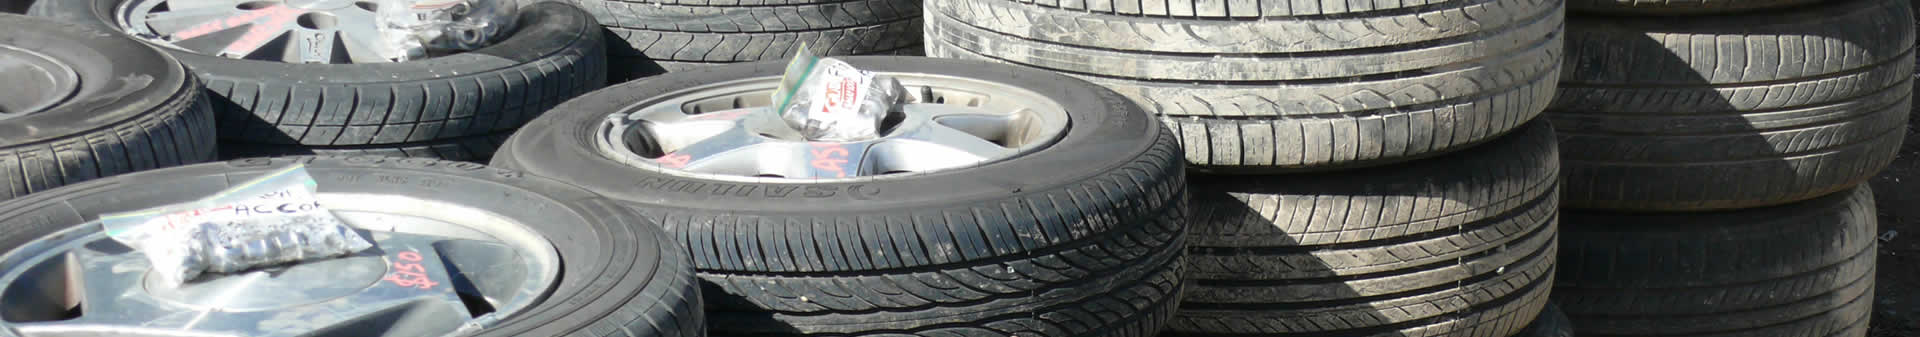 pick-a-part tyres